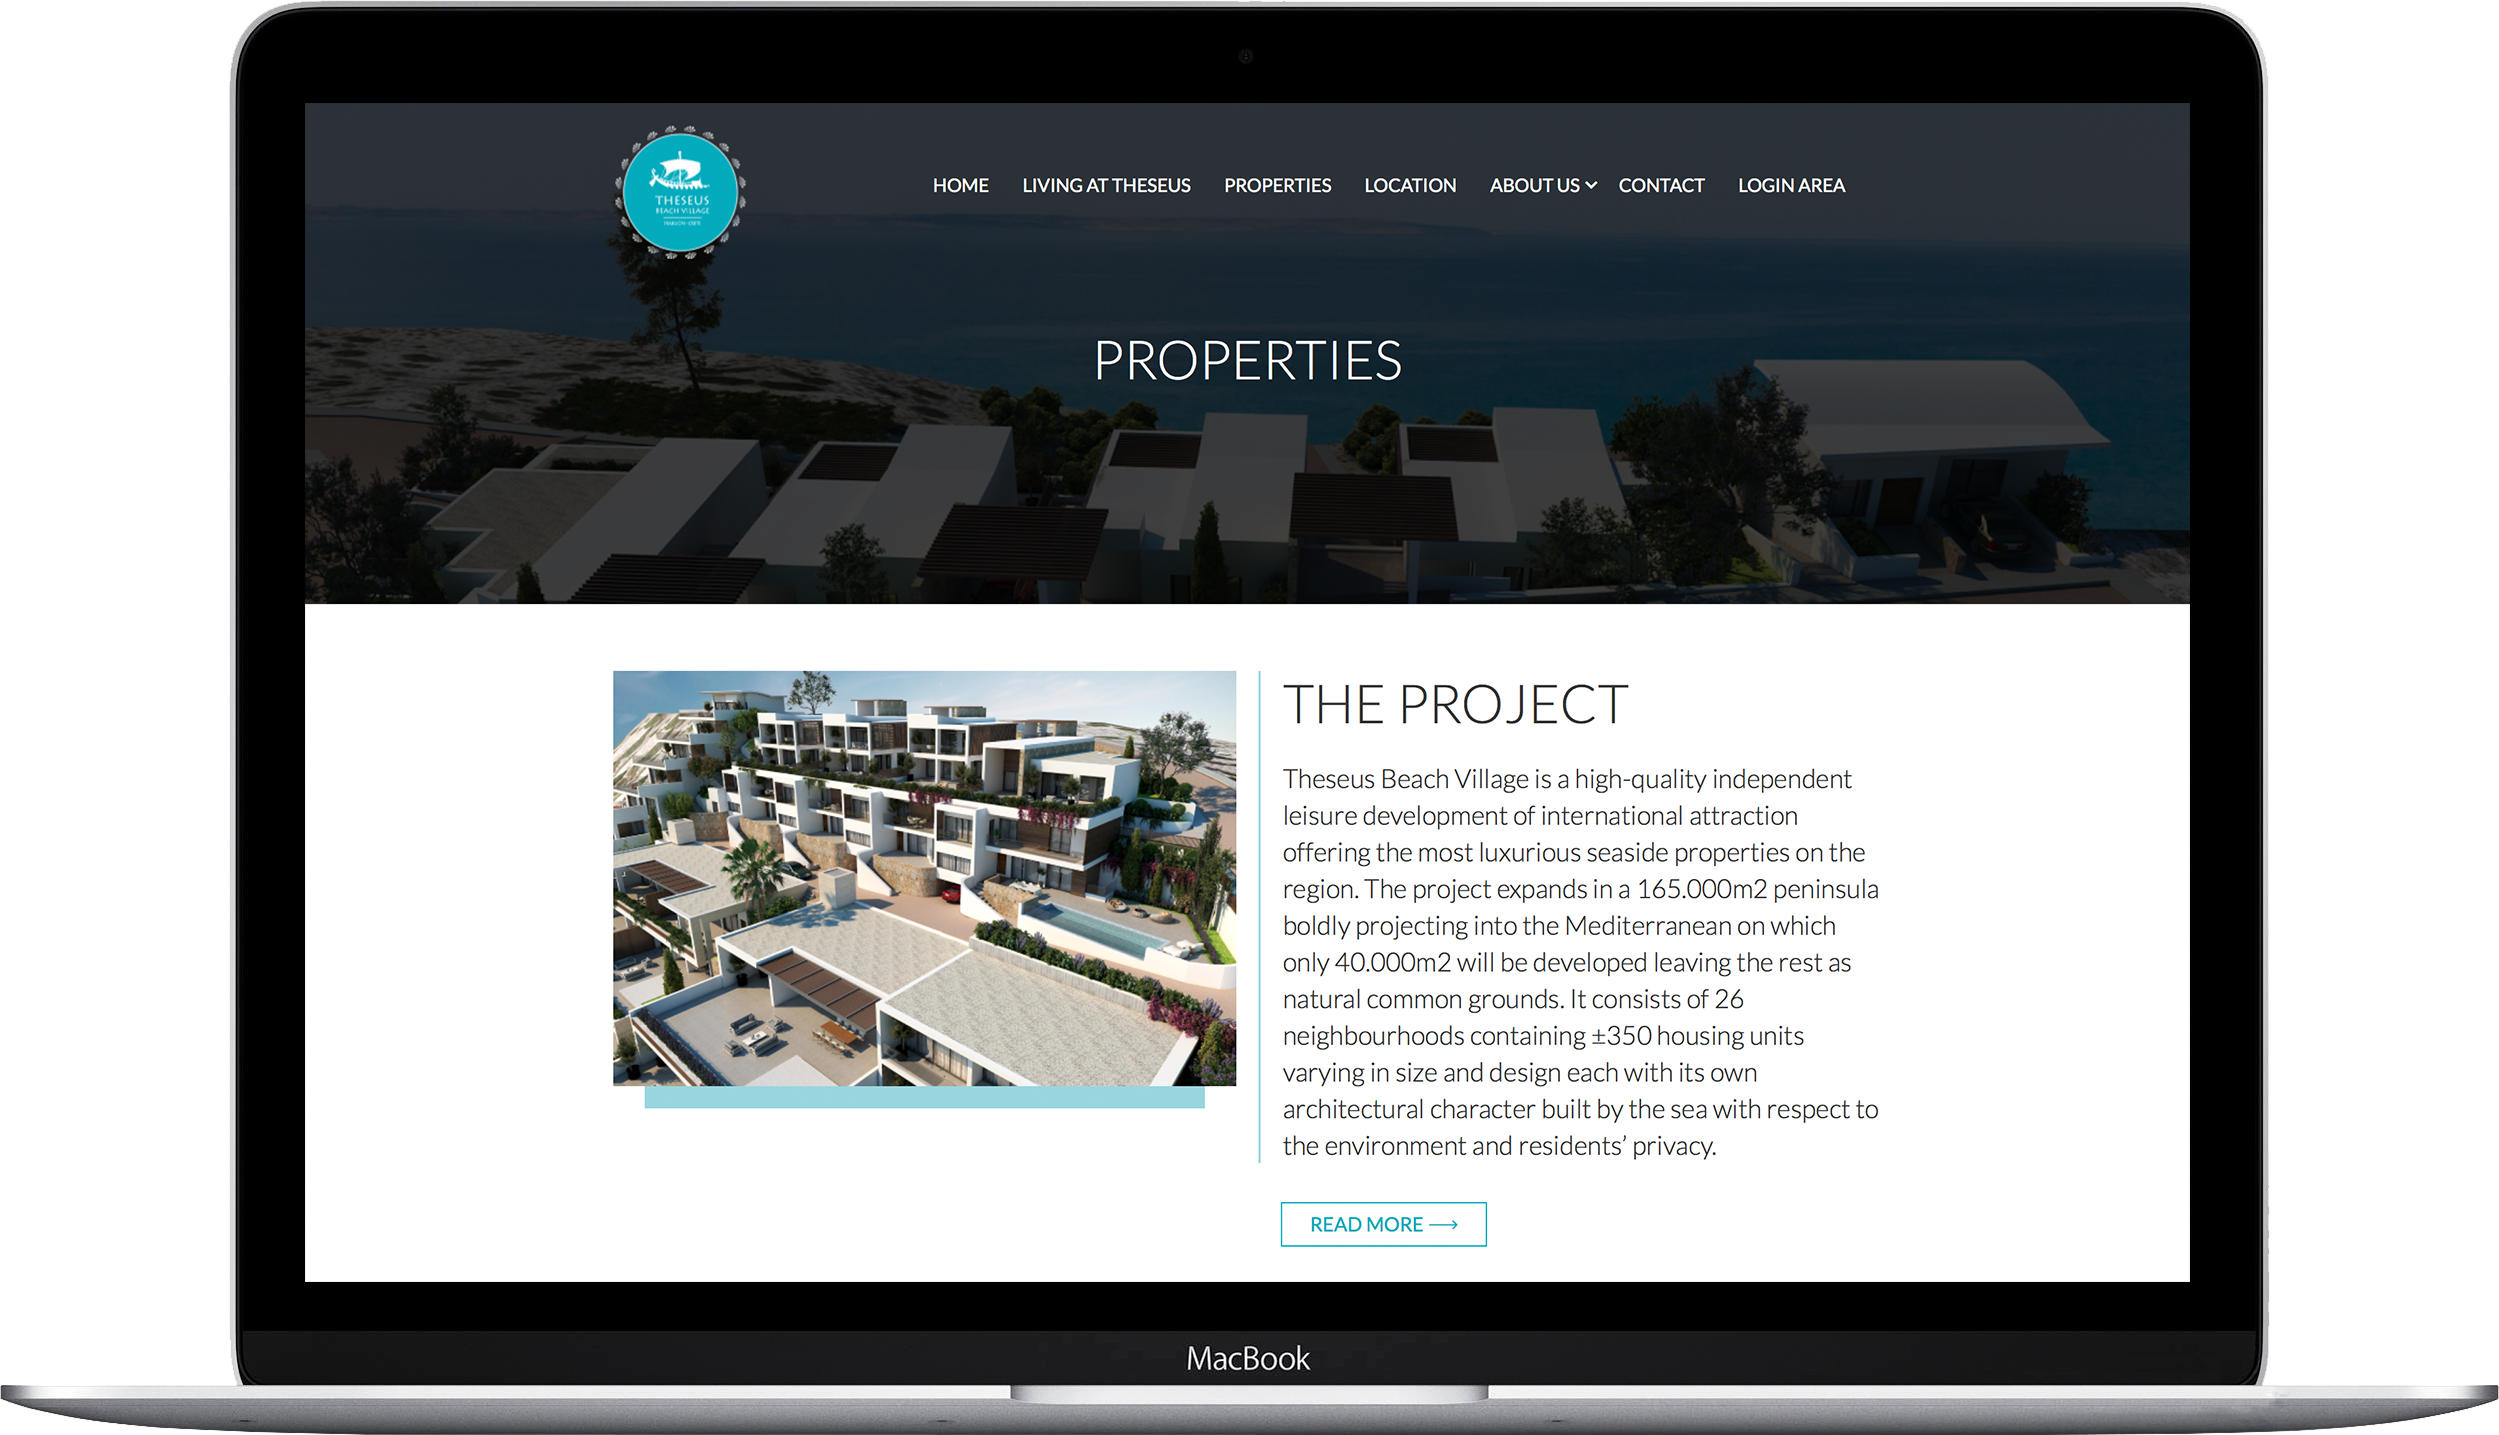 Theseus Beach Village development